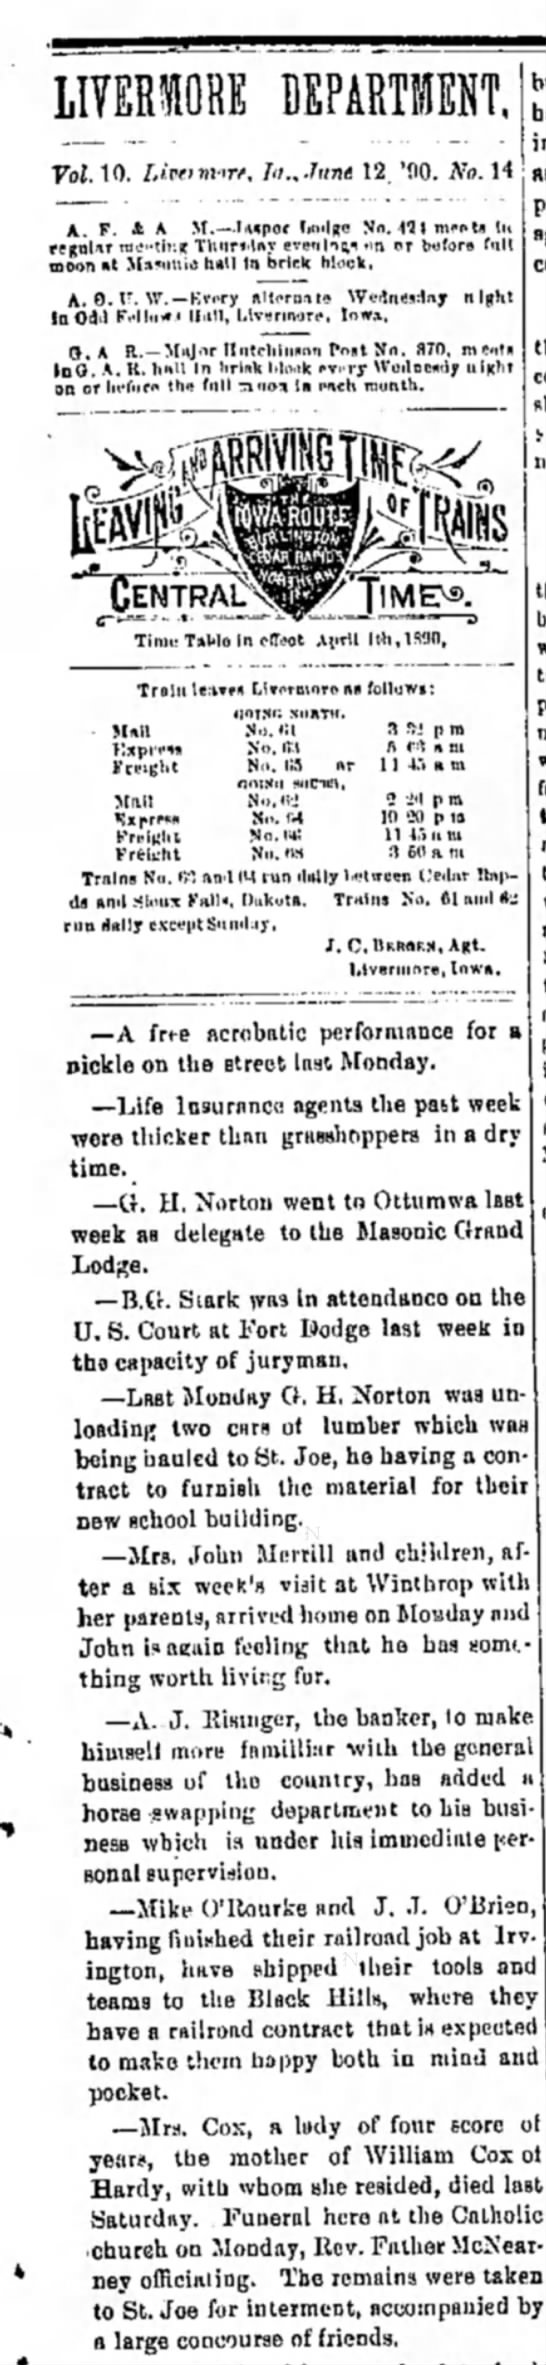 12 June 1890 Humboldt Independent -